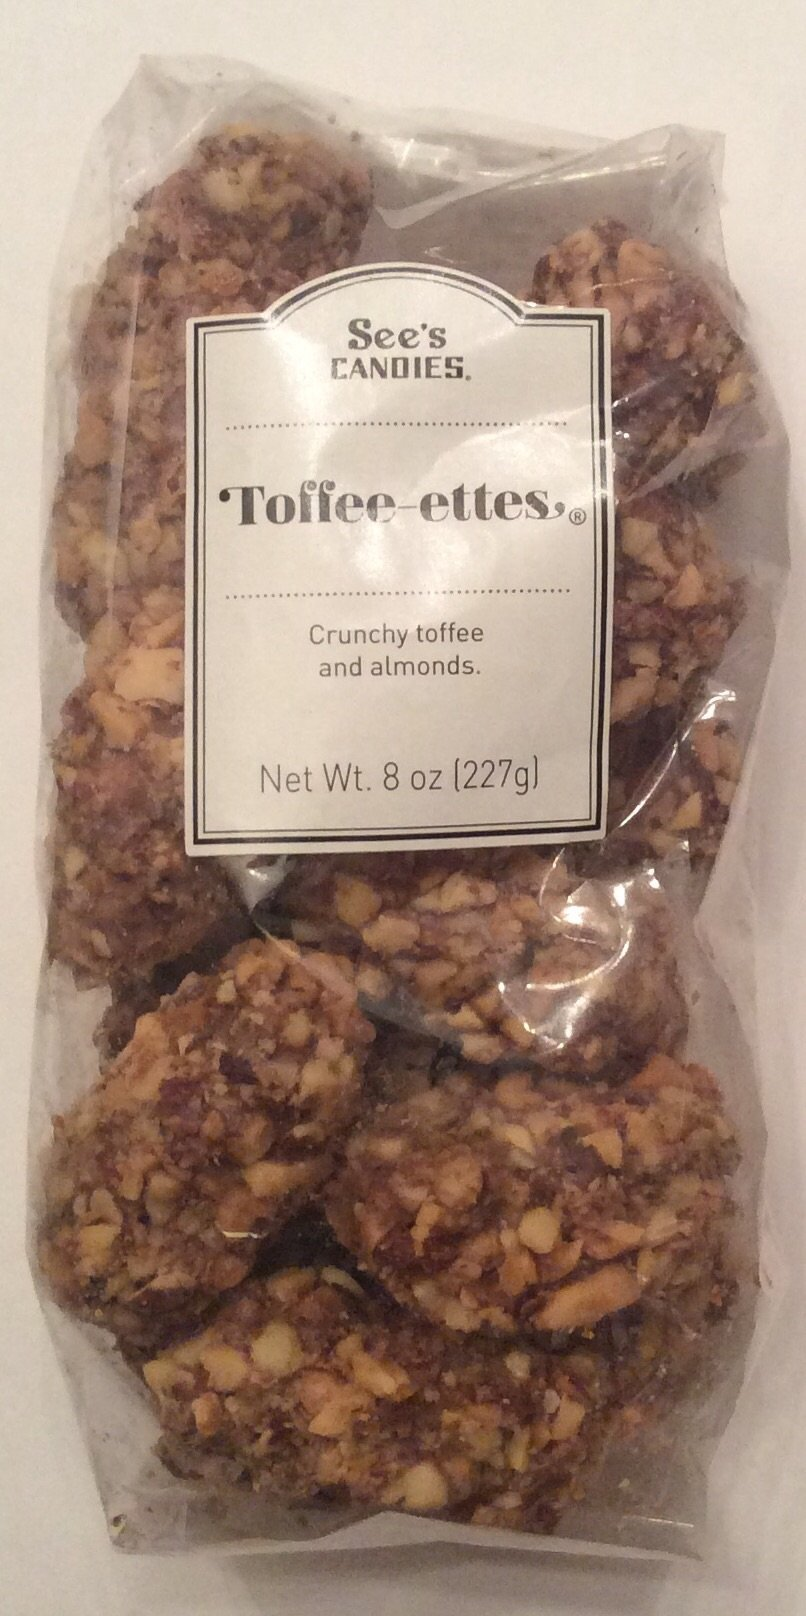 See's Candies Toffee-ettes 8 Oz (one bag) by See's Candies